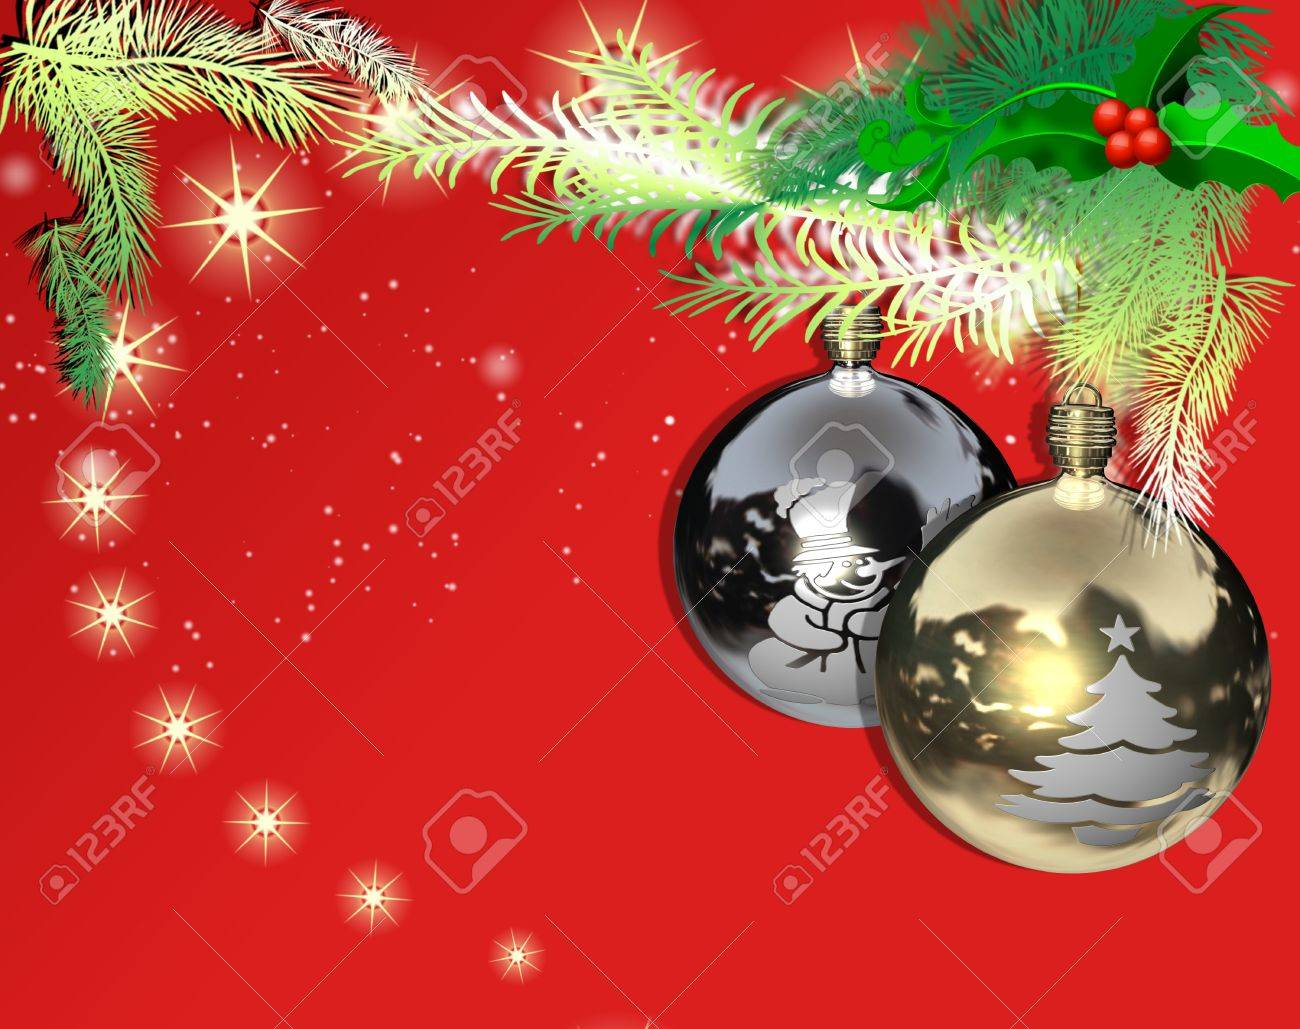 Christmas balls decorated for the Christmas tree, decorated with various colors and details Stock Photo - 11151763